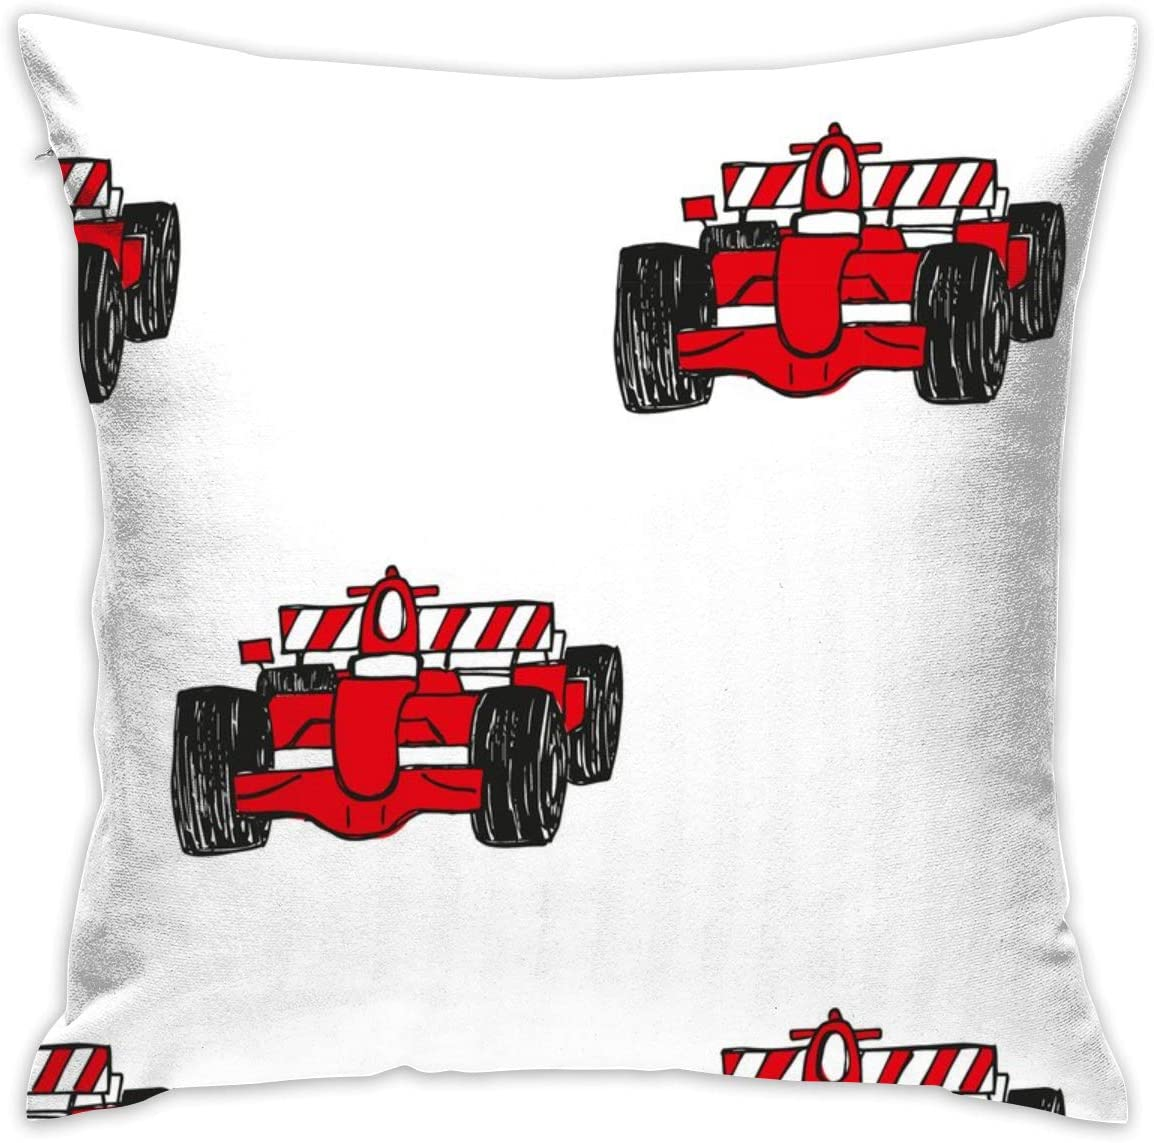 Bagpack Formula 1 Red Racing Cars Pillow Cover 18 X18 Diagram Pillowcase Square Throw Case Cushion For Sofa Decorative Home Kitchen